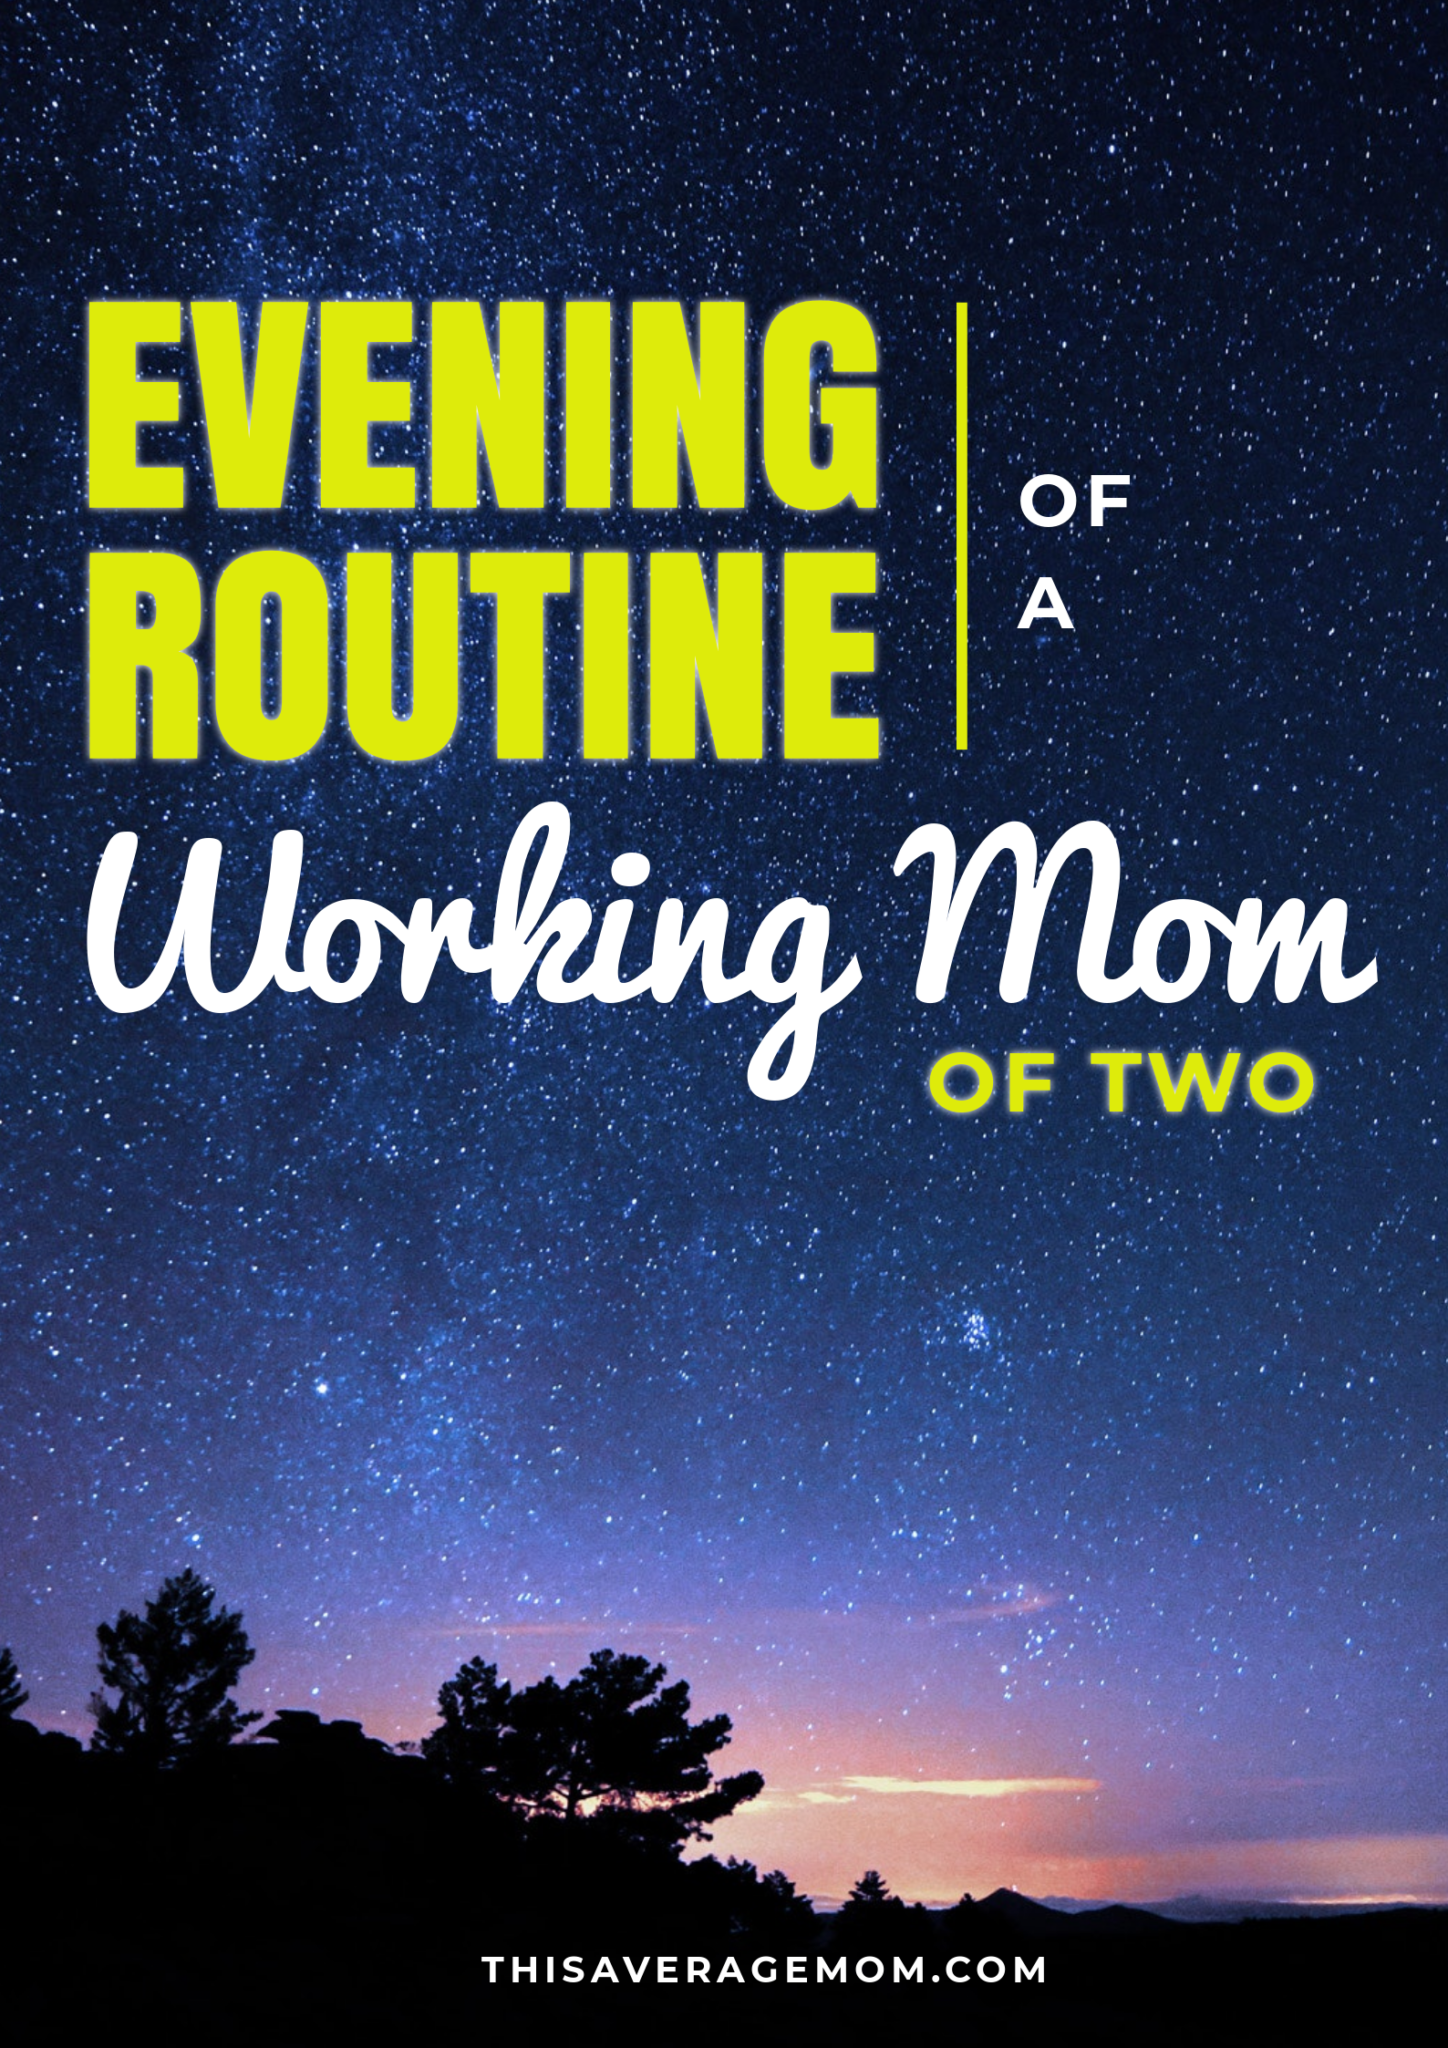 Being a working mom is not easy, and evenings can be a struggle. Between homework, dinner, baths and more, it can be hard to find the perfect evening routine. I'm sharing my routine with 2 kids and hoping it will help you see that we're all just making it work.